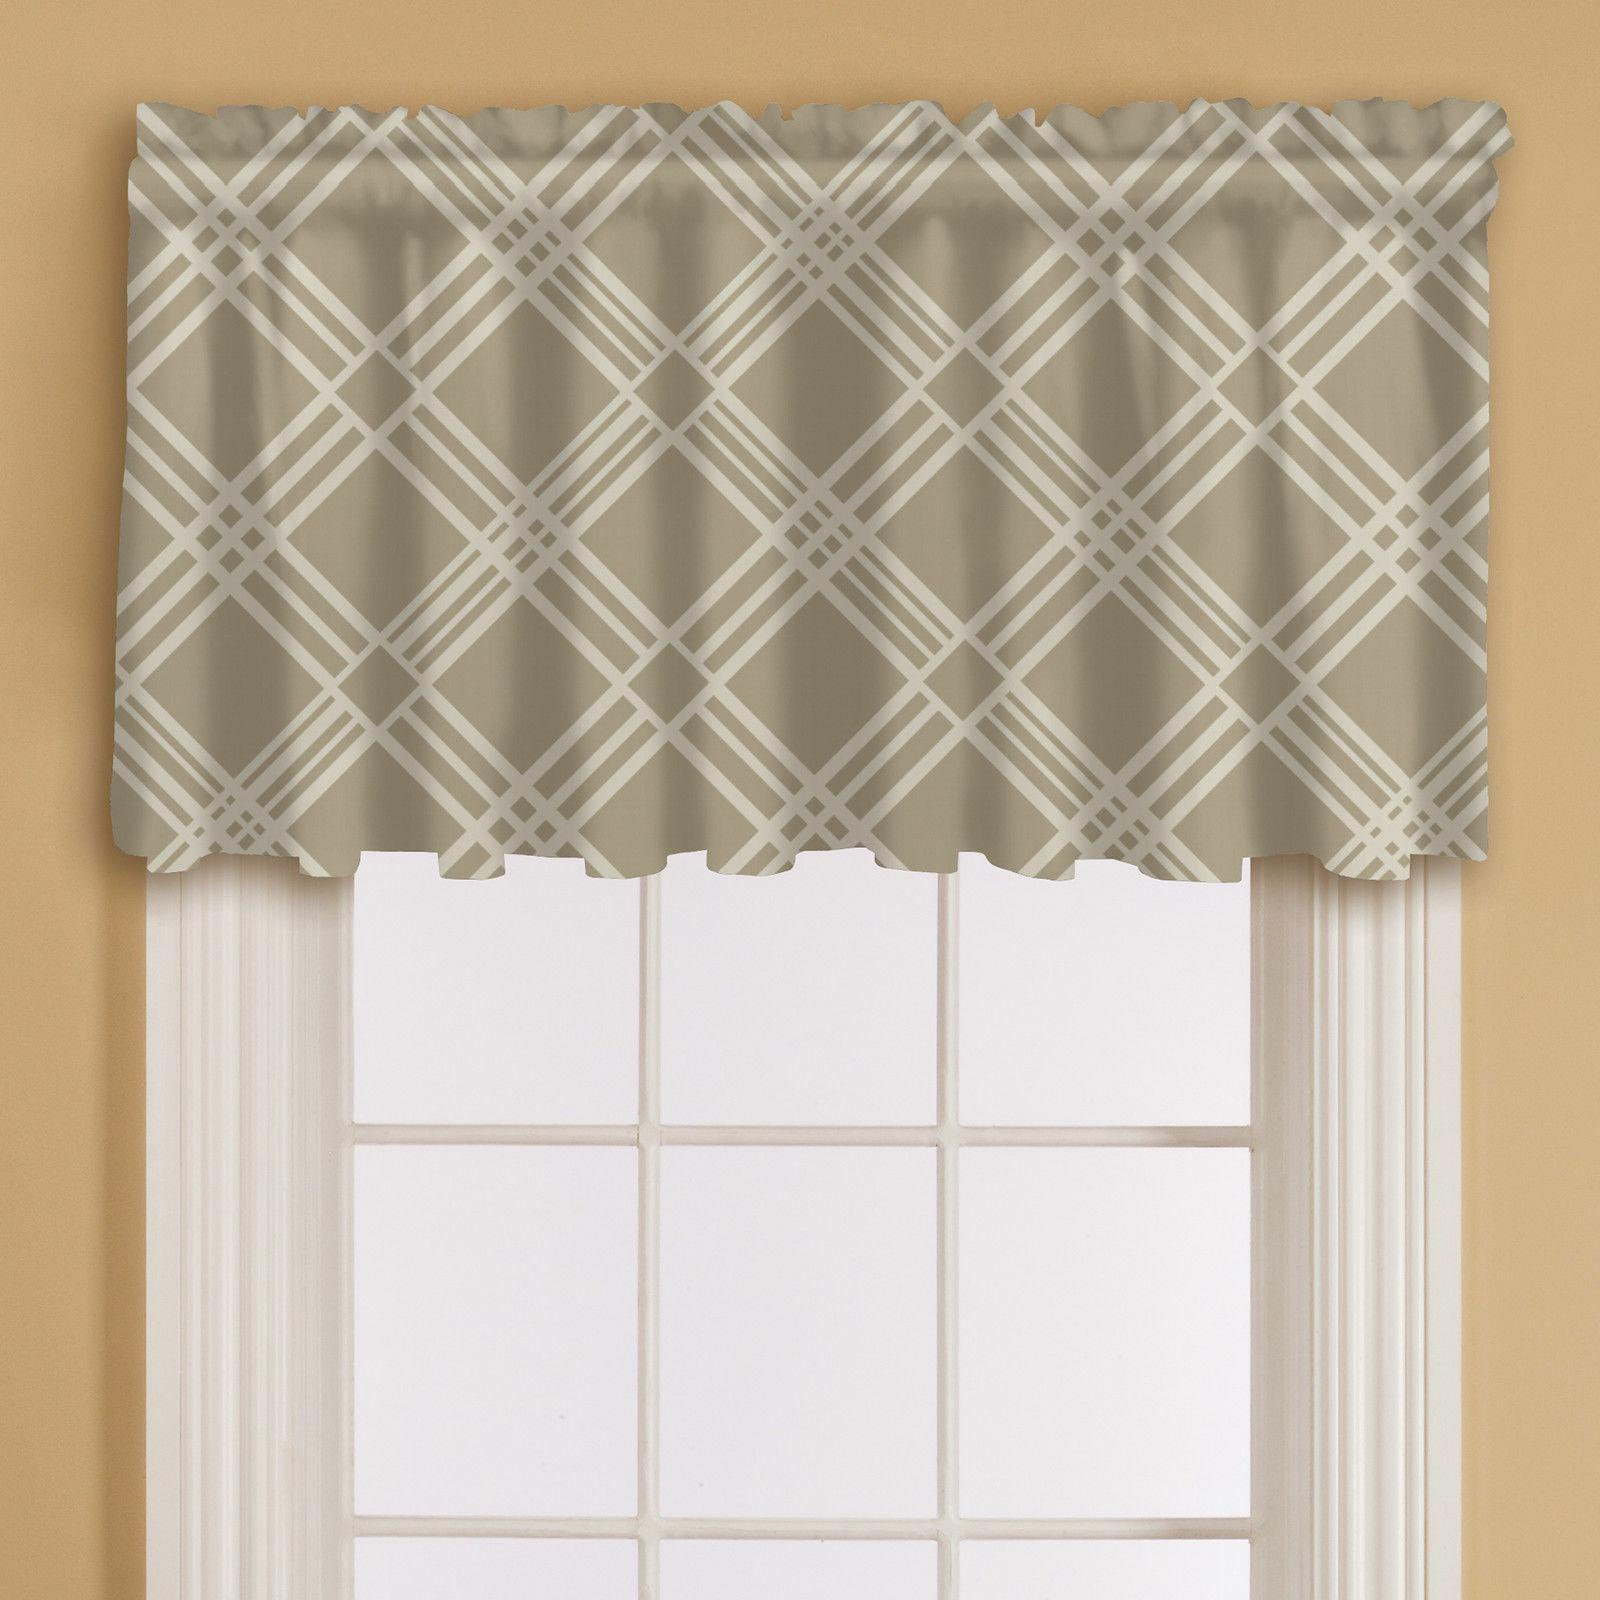 Essential Home Print Window Valance 60 by 16-Inch - Sand